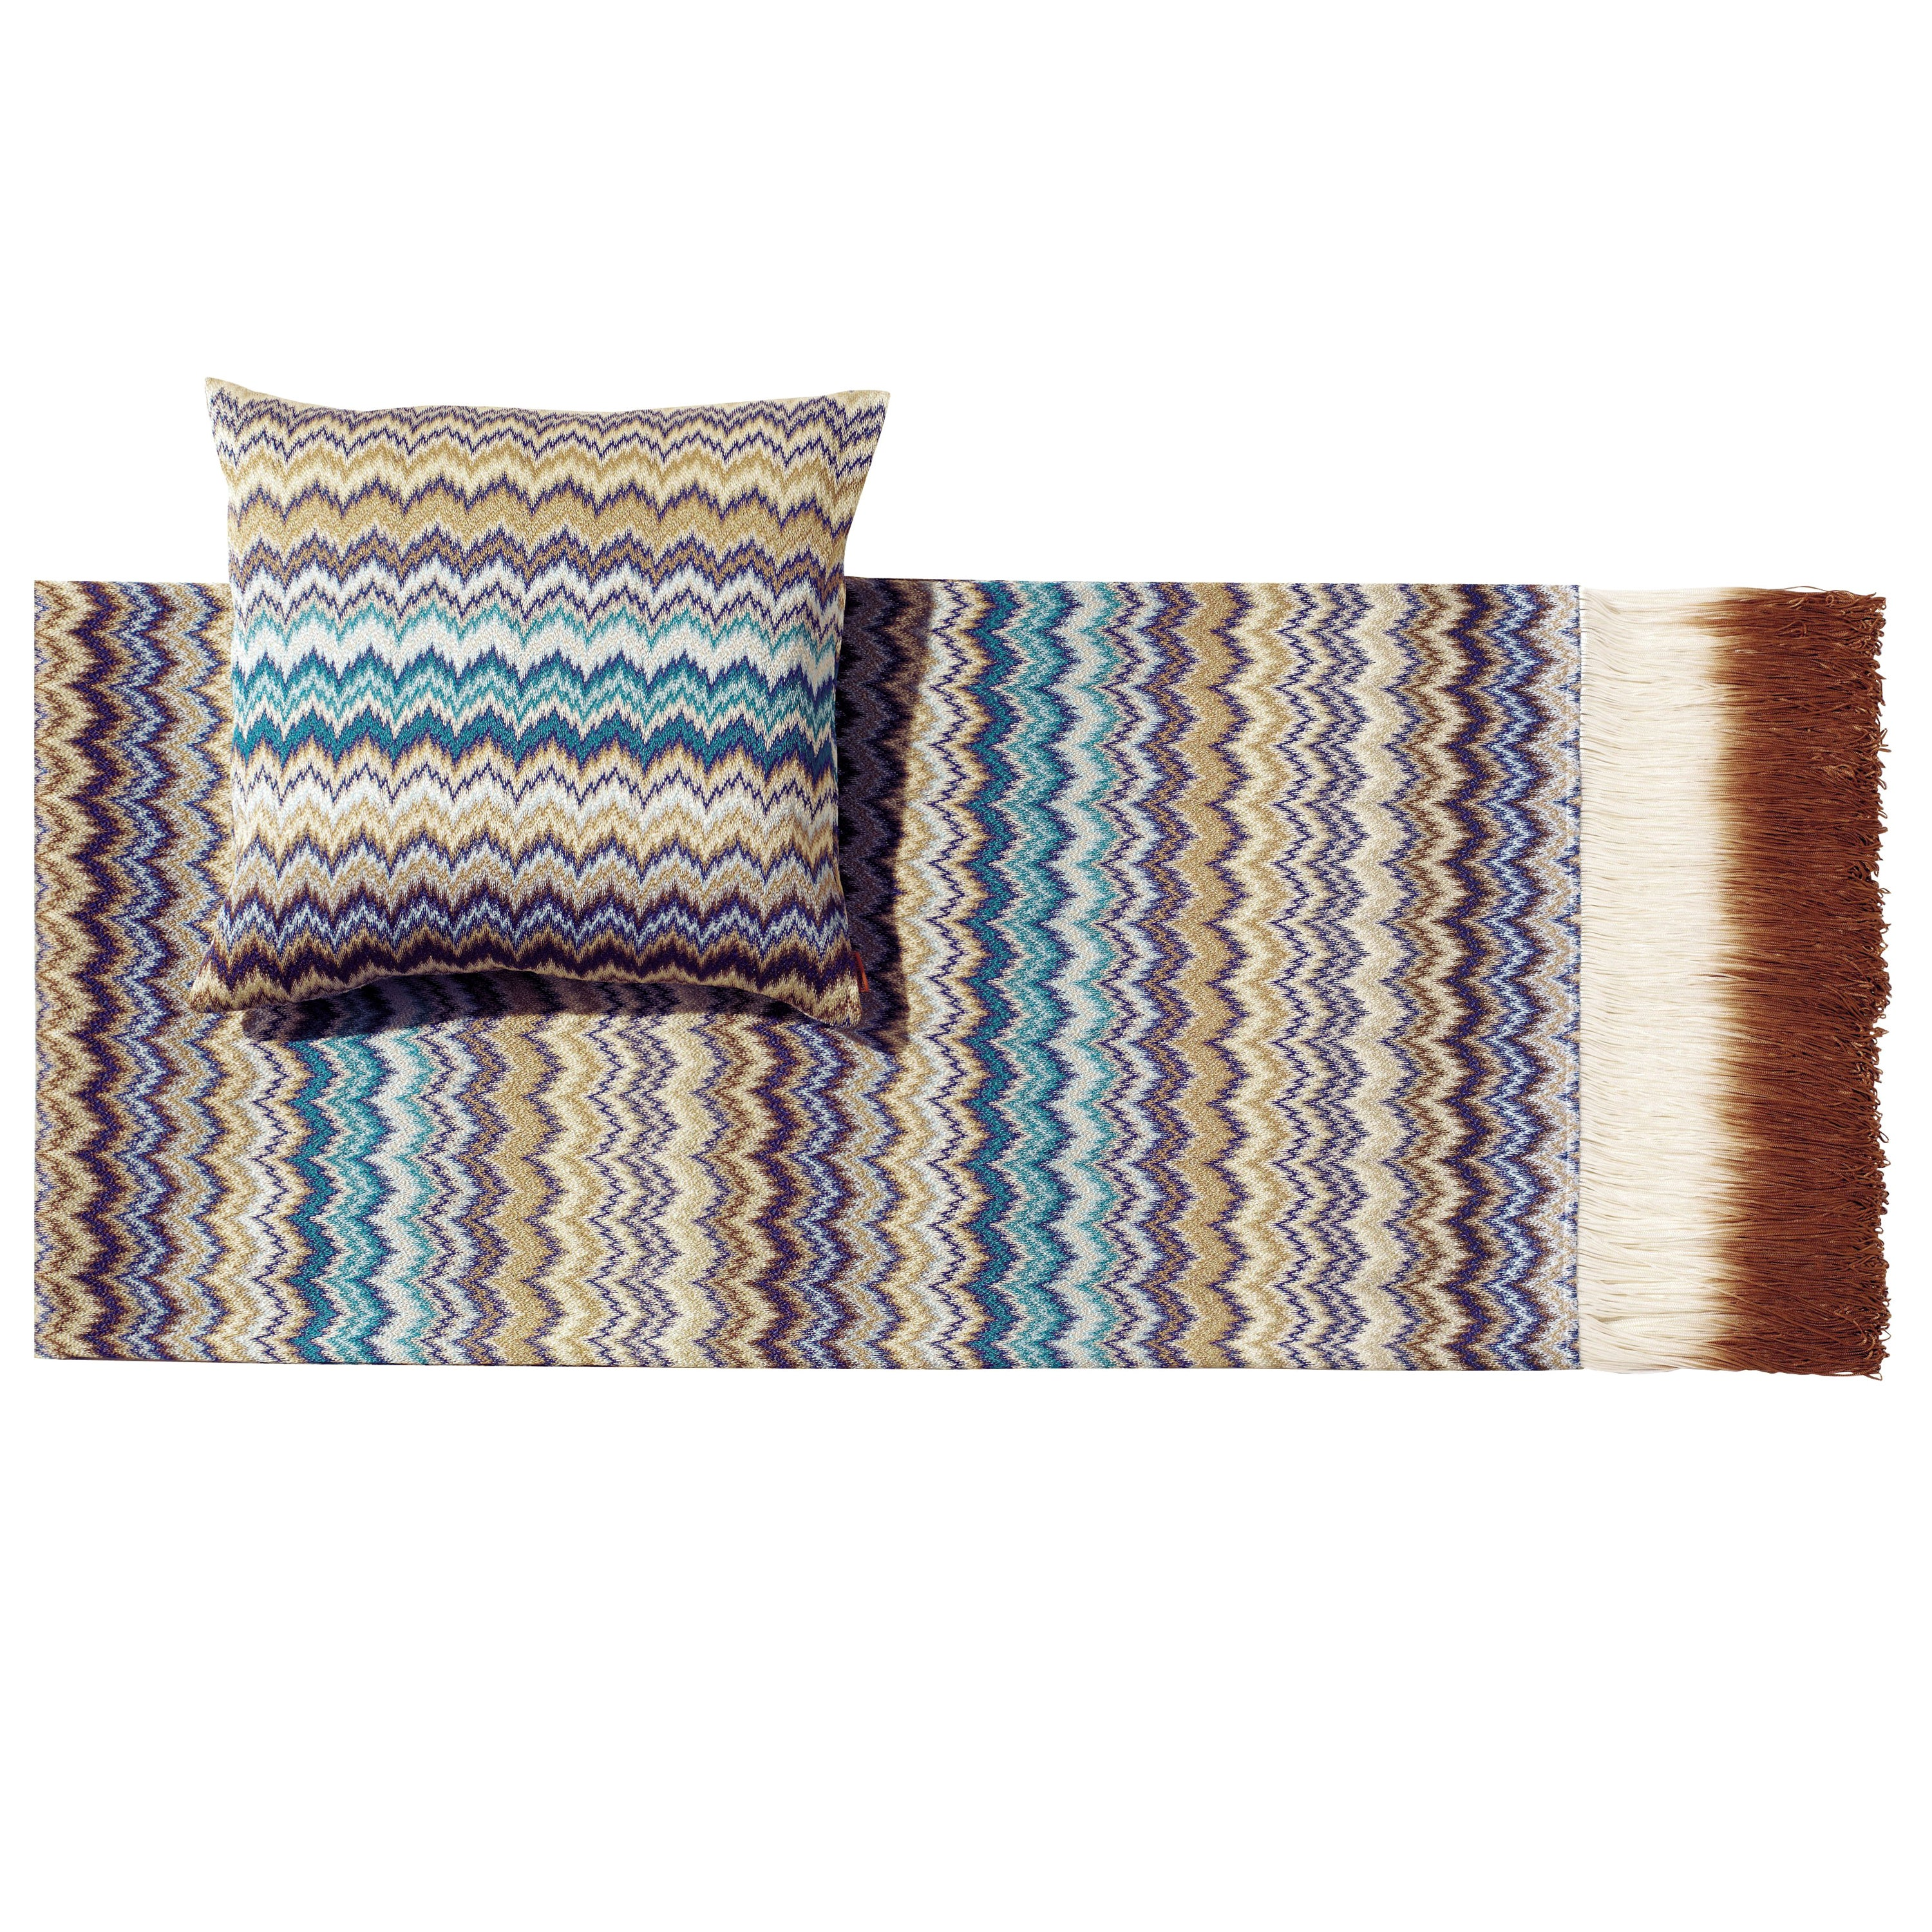 MissoniHome Prudence Throw & Cushion Set in Blue & Multicolor Chevron Print